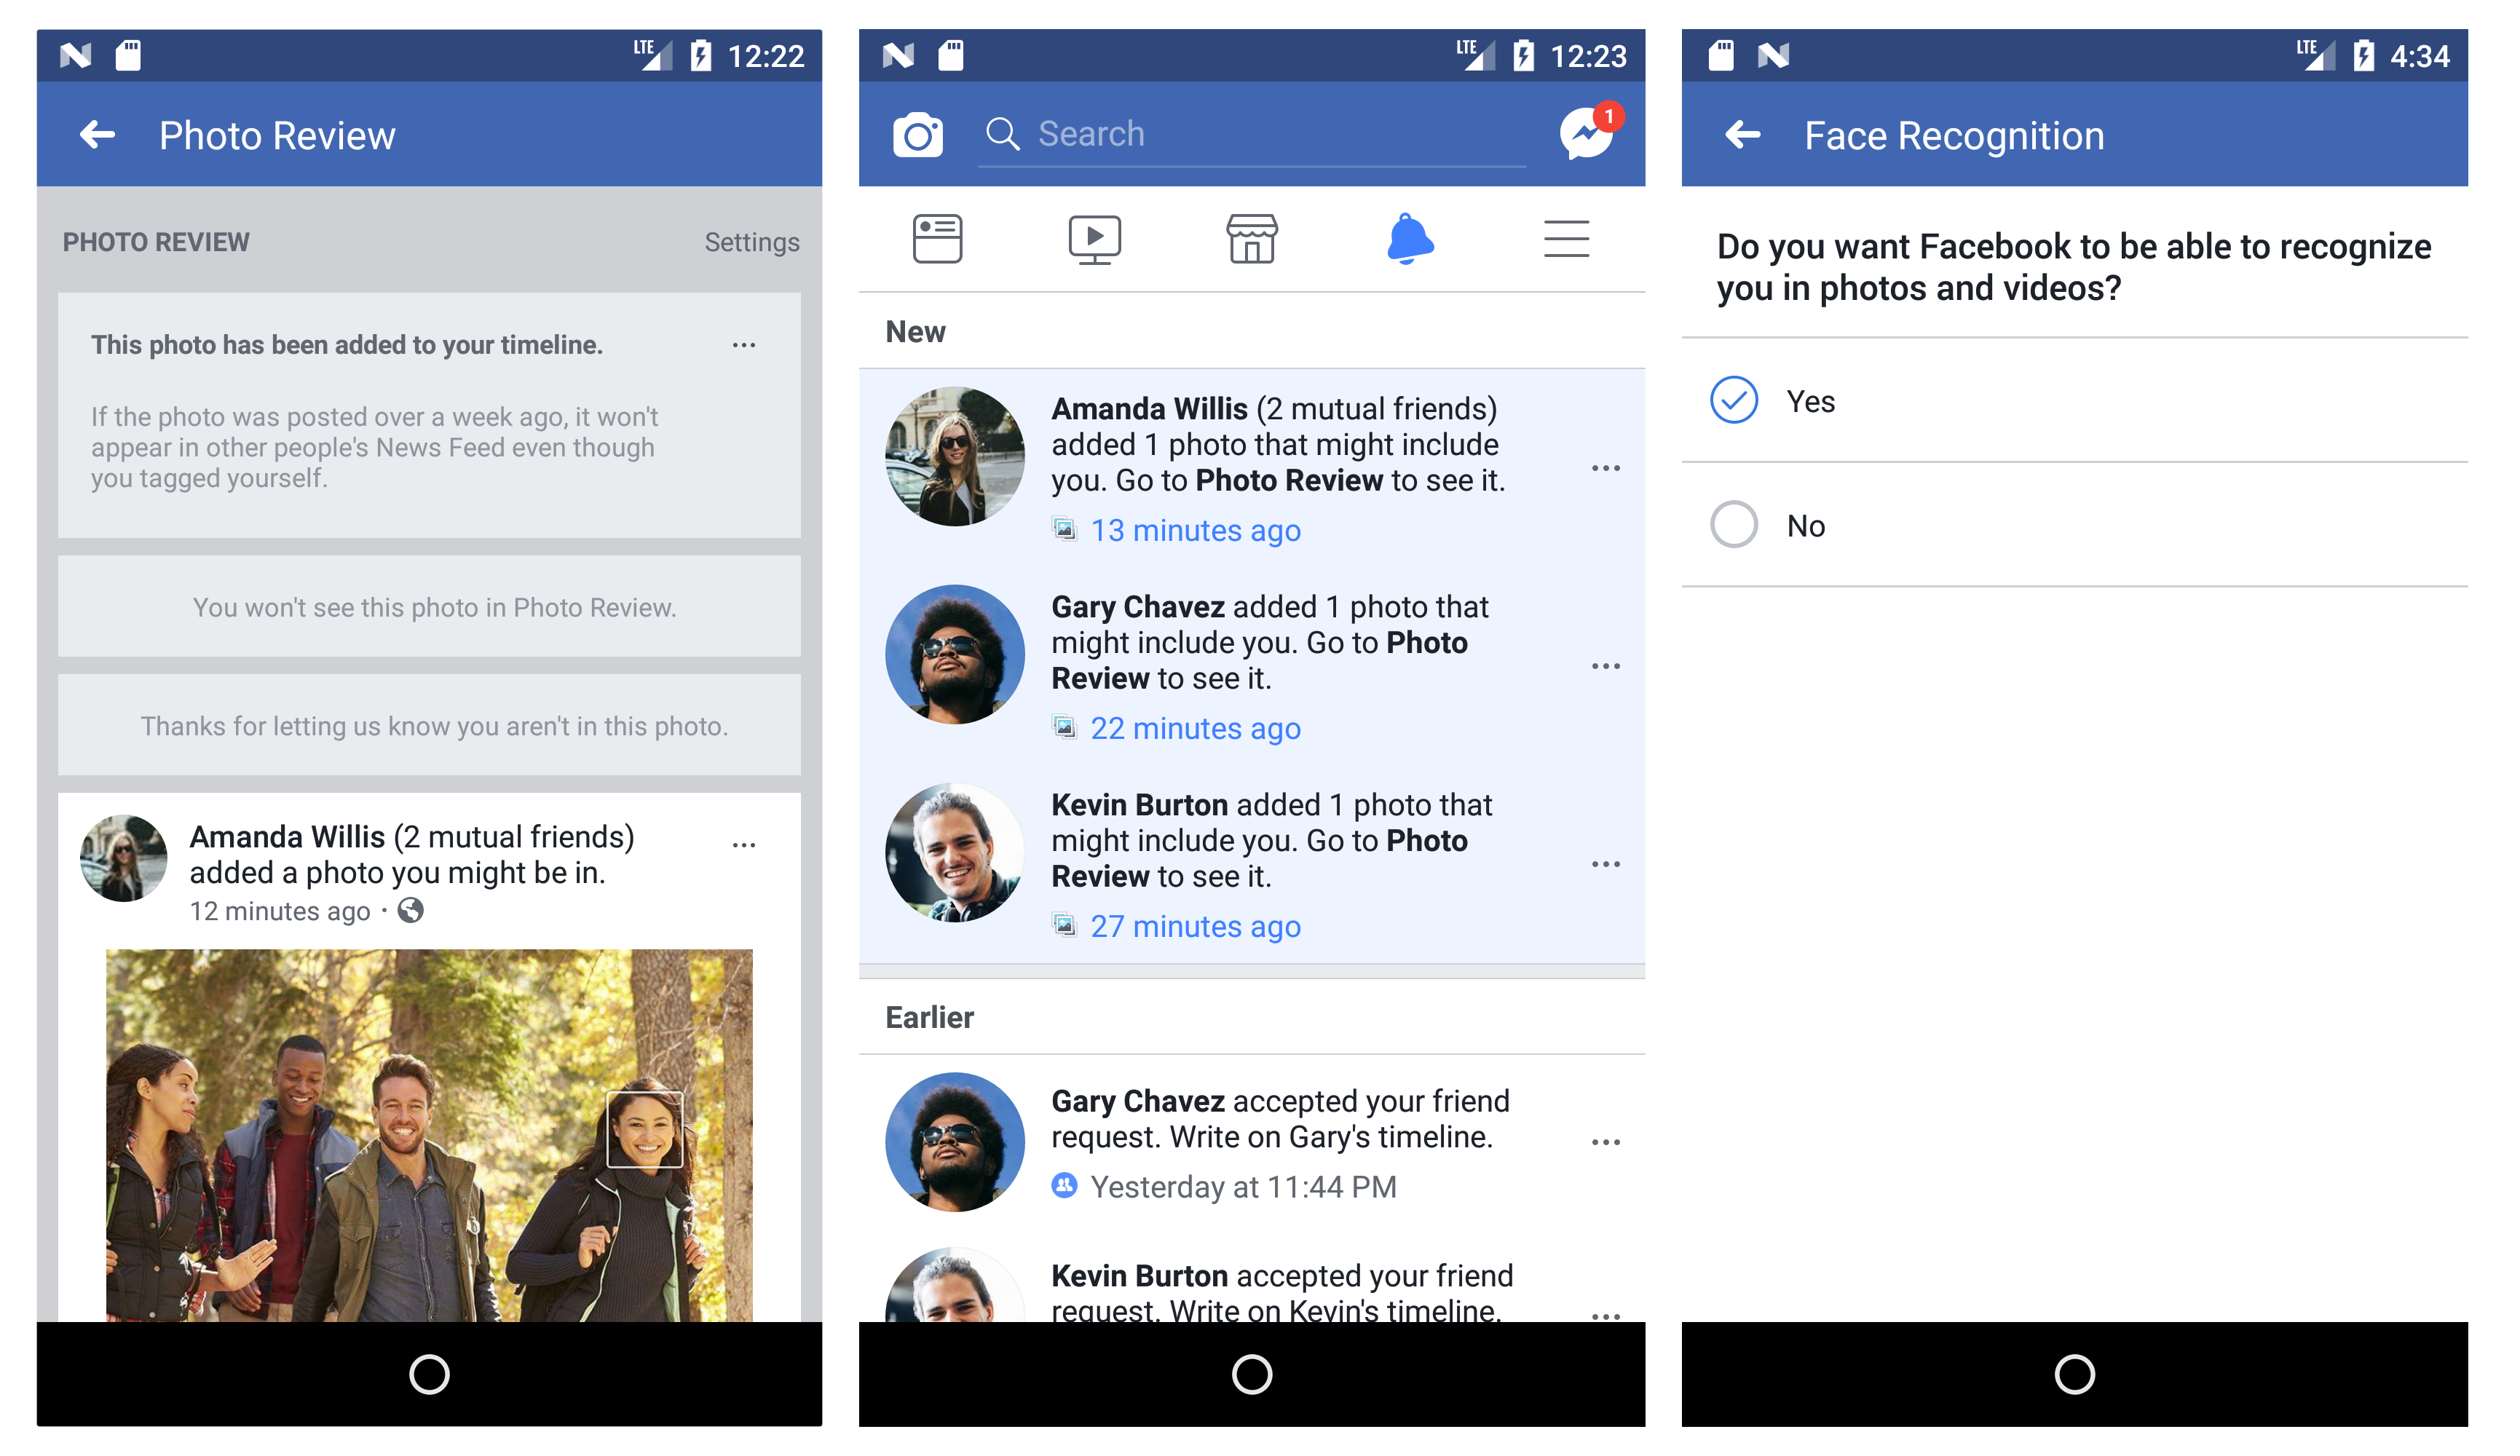 Facebook Recognition Features Now Keep A Template Of Your Face